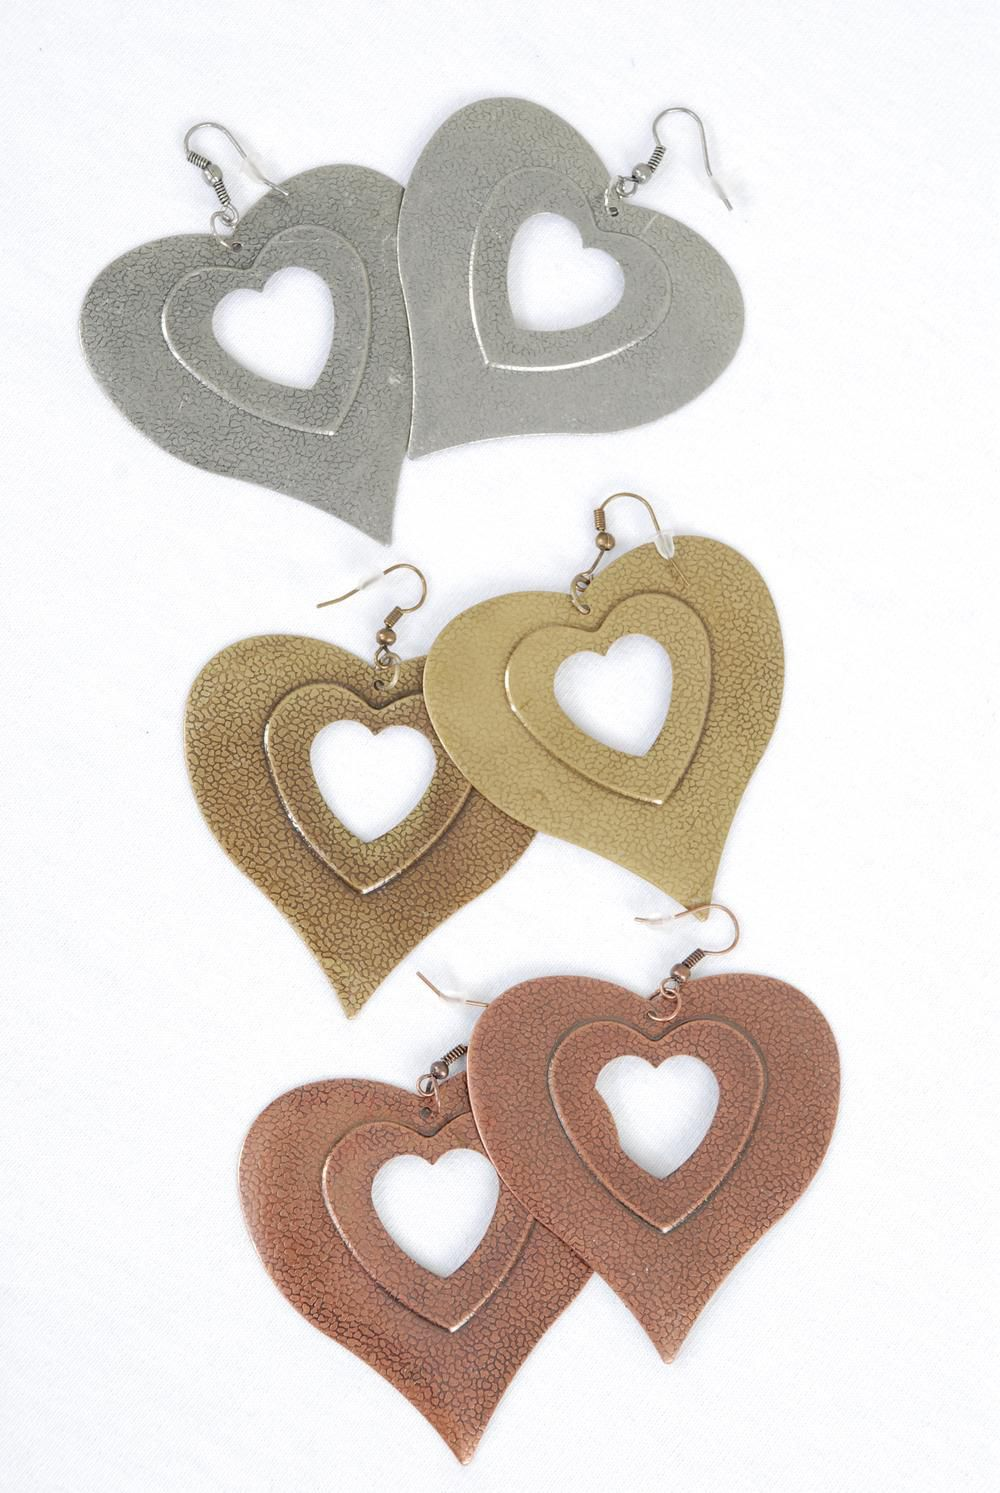 "Earrings Metal Heart Antique Finish/DZ **Fish Hook** Size-2.25""x 2"" Wide,4 Copper,4 Brass,4 Pewter Mix,Earring Card & OPP bag & UPC Code -"